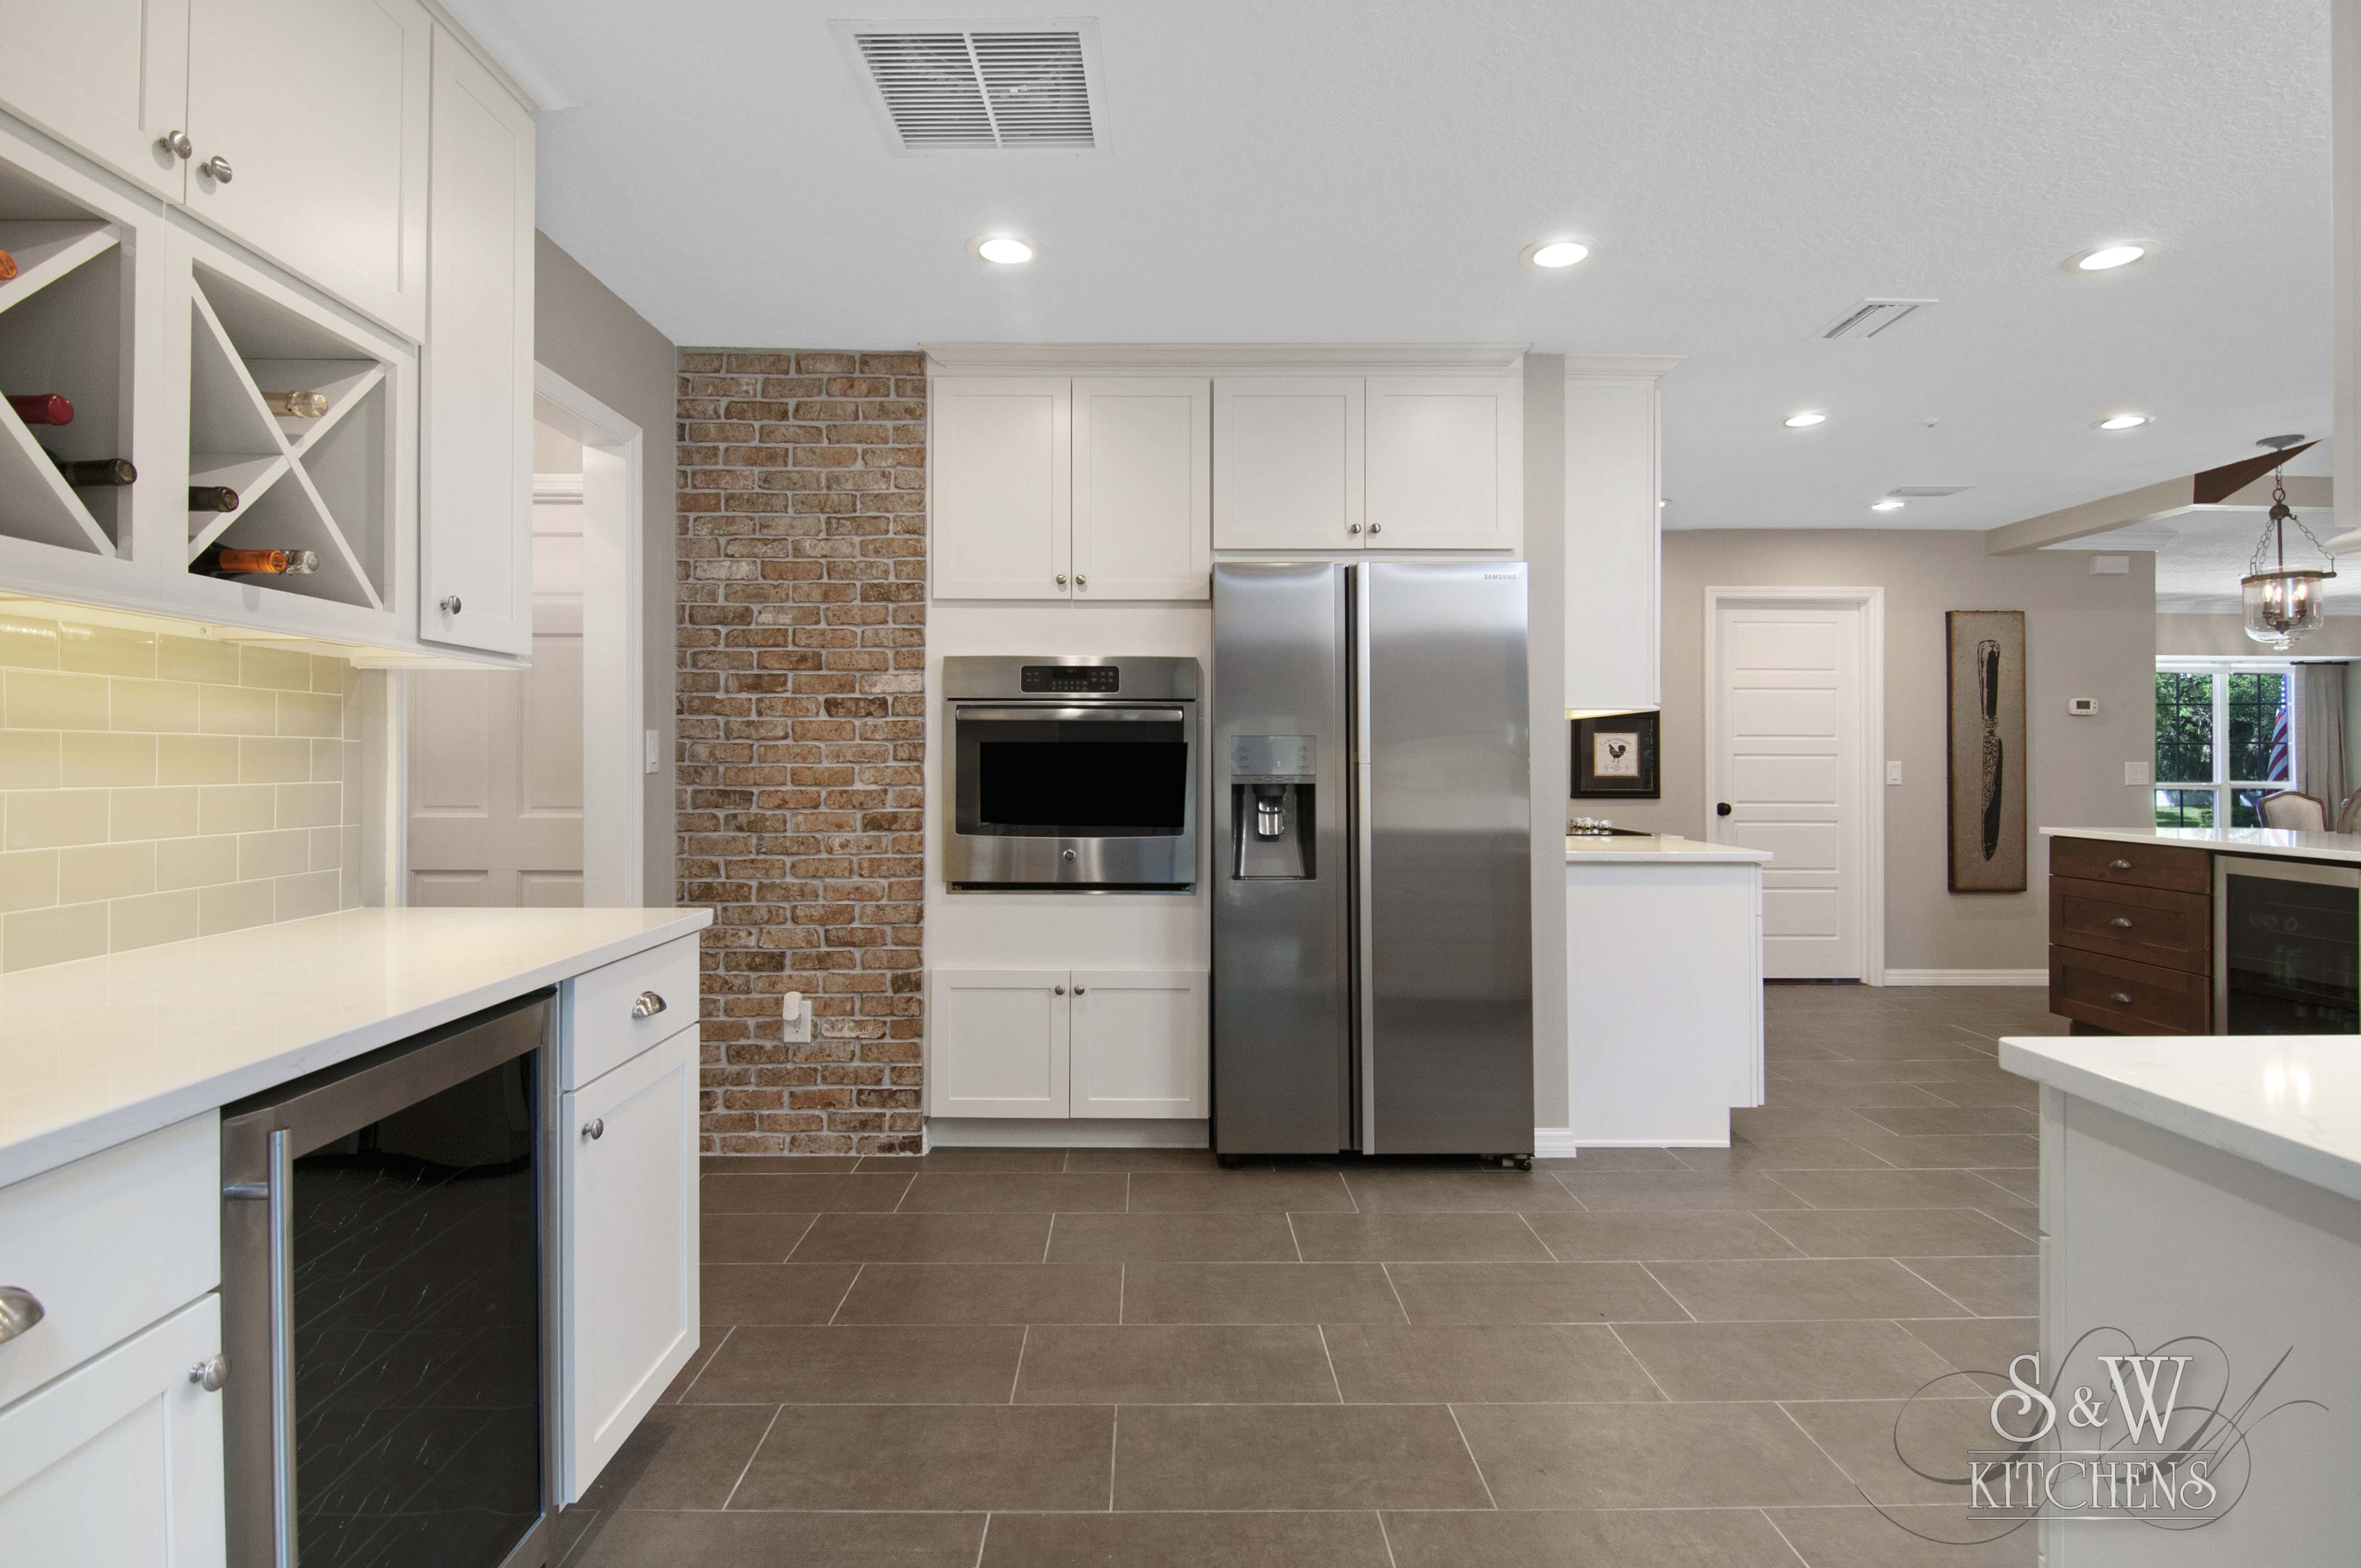 brignac_kitchen_007.jpg